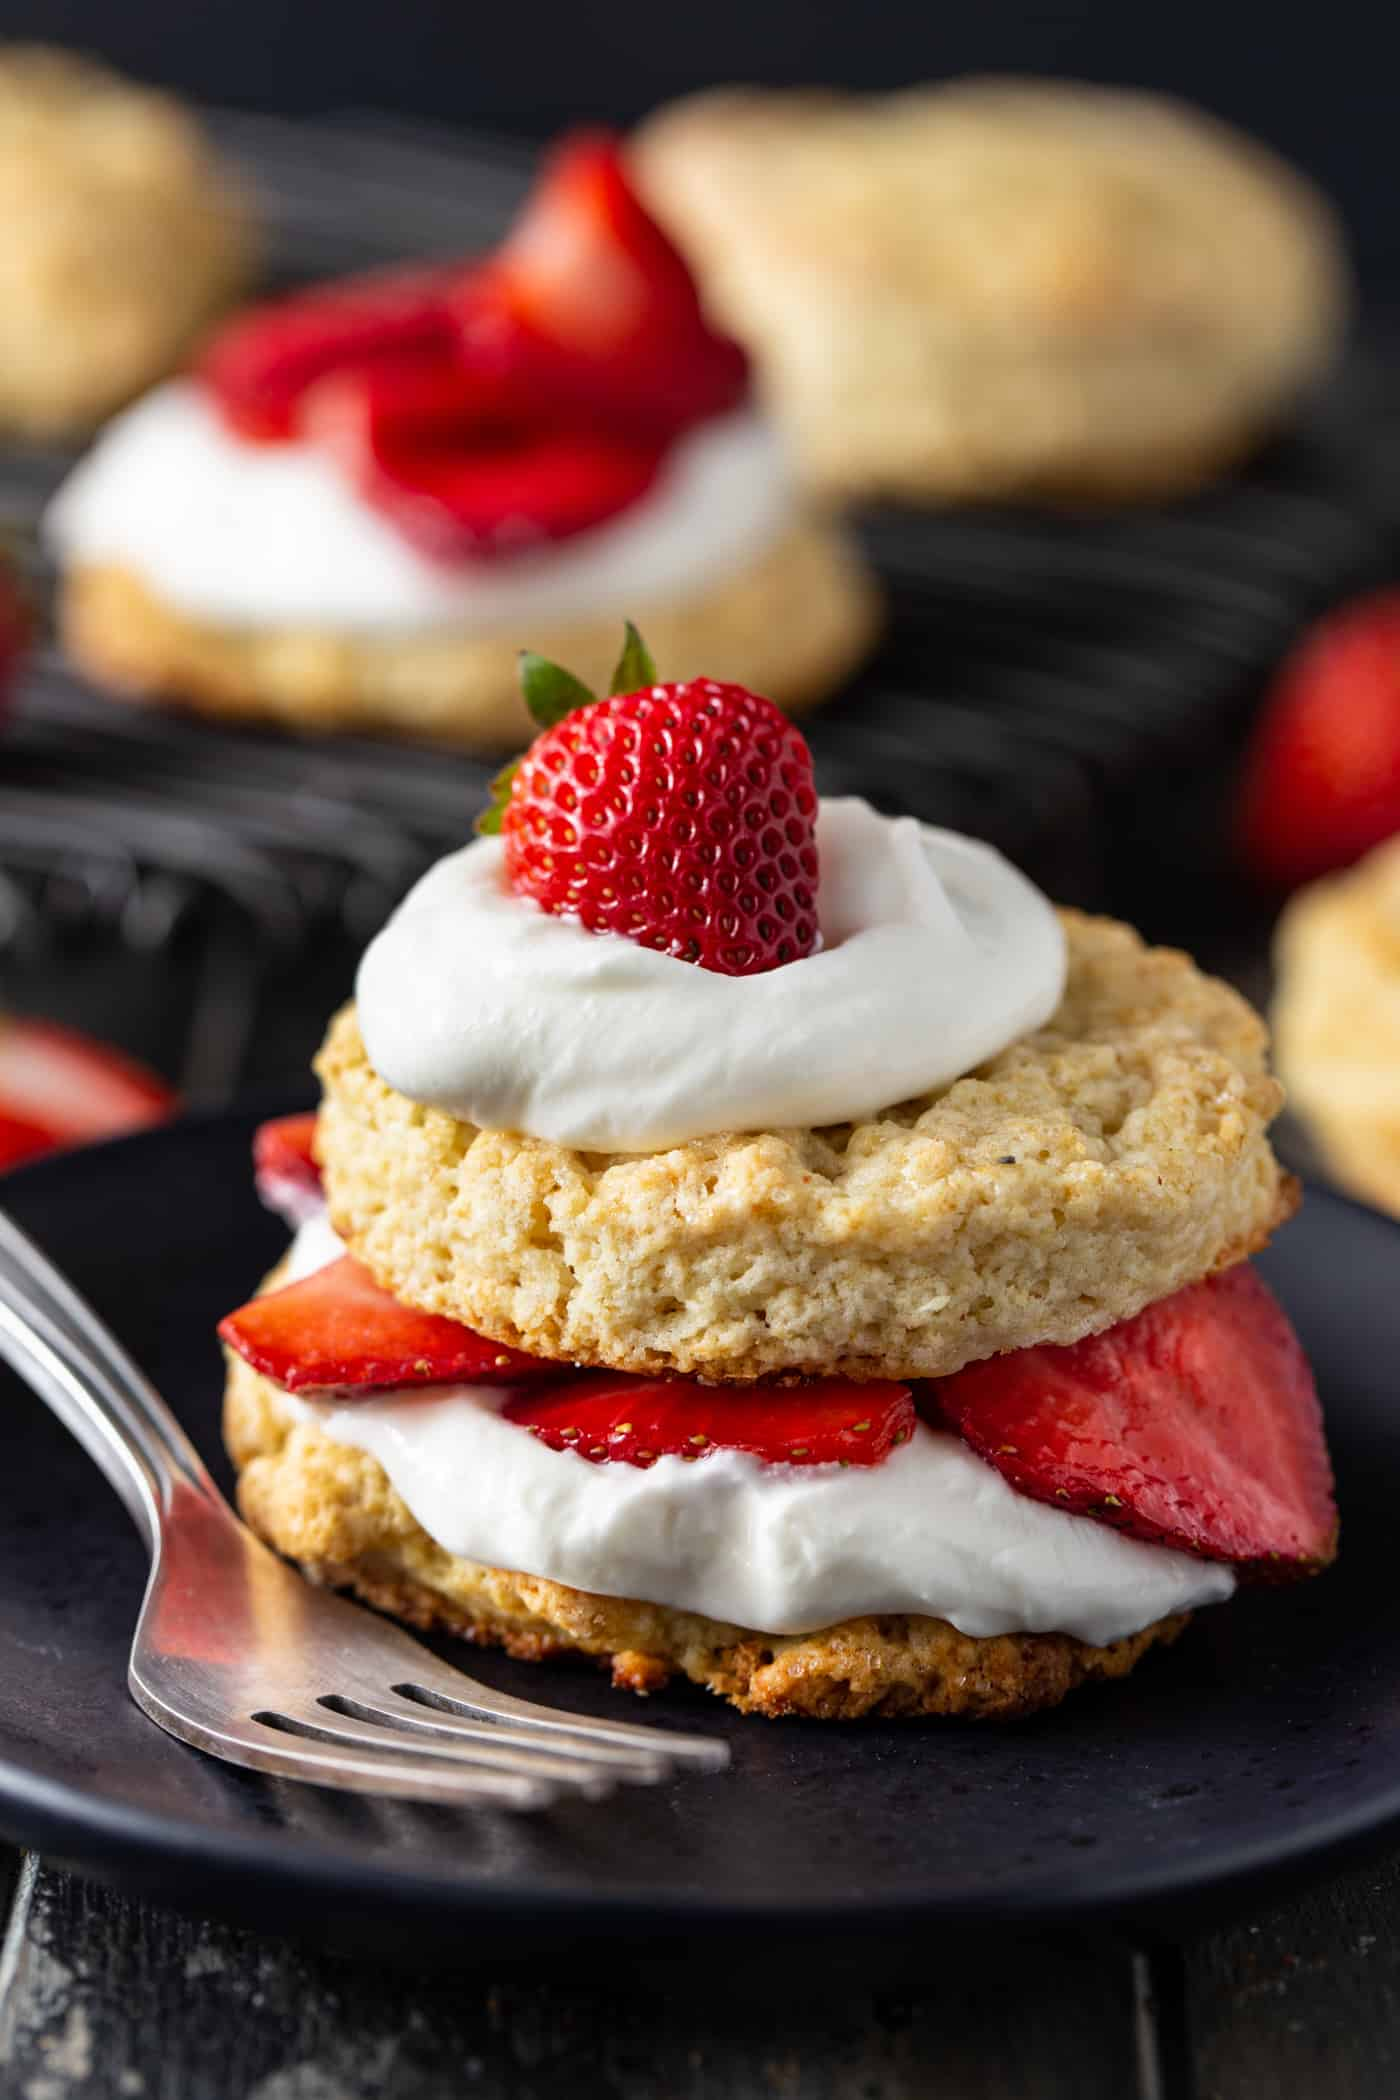 Strawberry shortcake on a dark plate layered with sliced strawberries and whipped cream.